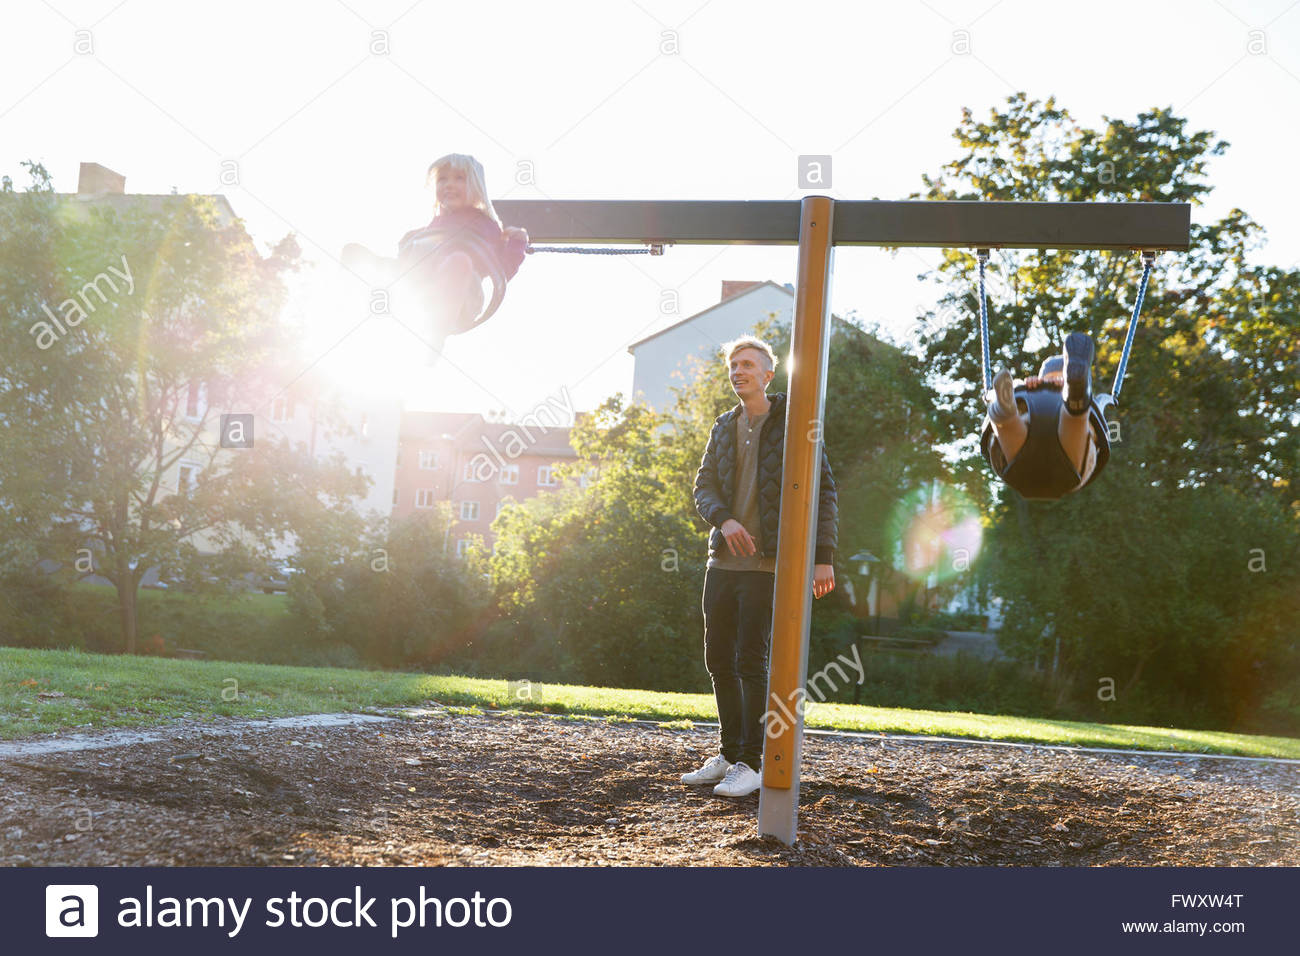 Sweden, Sodermanland, Arsta, Father with son (4-5) and daughter (2-3) swinging on playground at sunlight - Stock Image